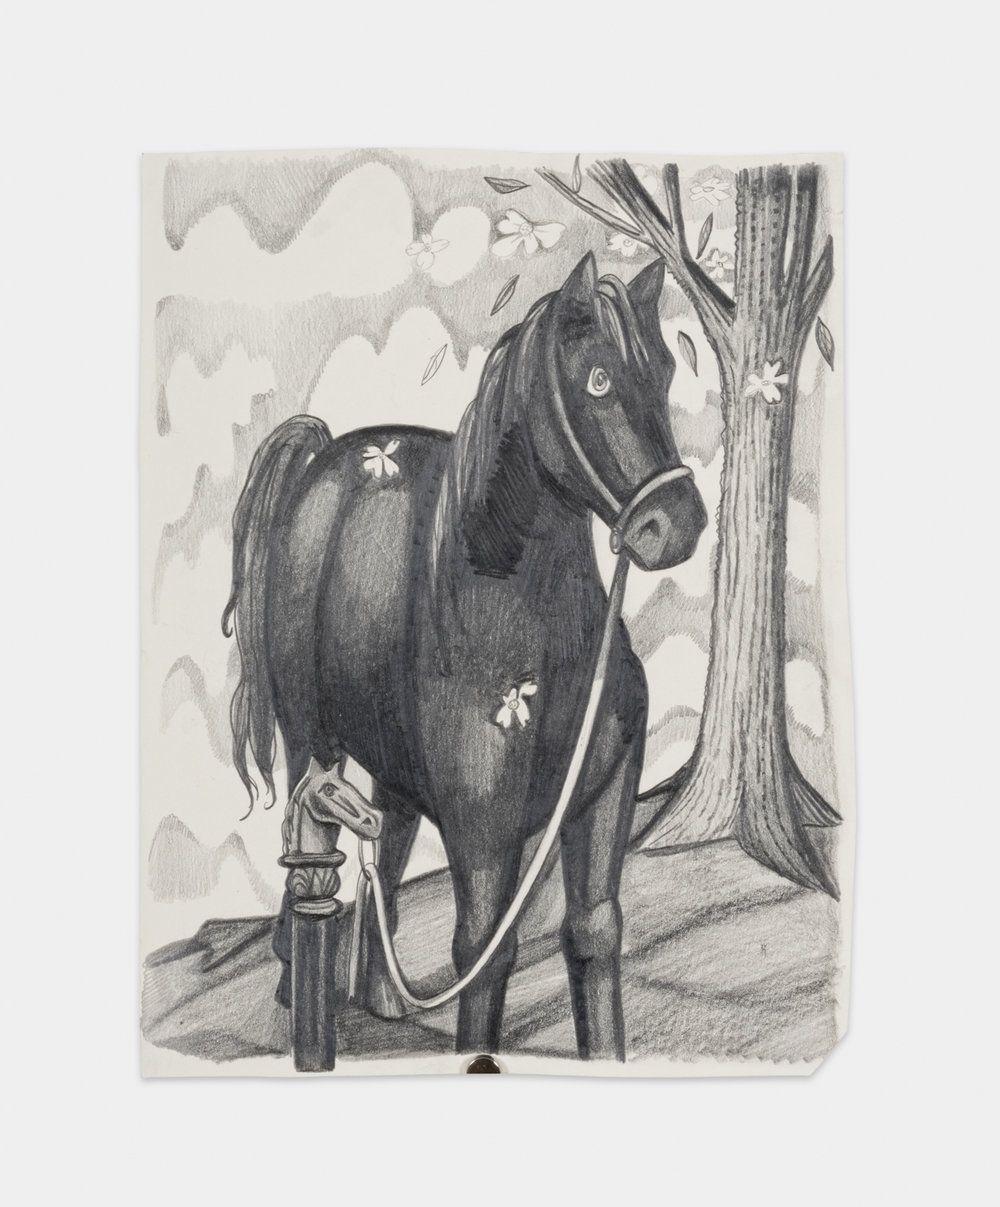 Nikki Maloof  Horse and Hitch  2017 Graphite on paper 11 ¾h x 8 ½w in NM013